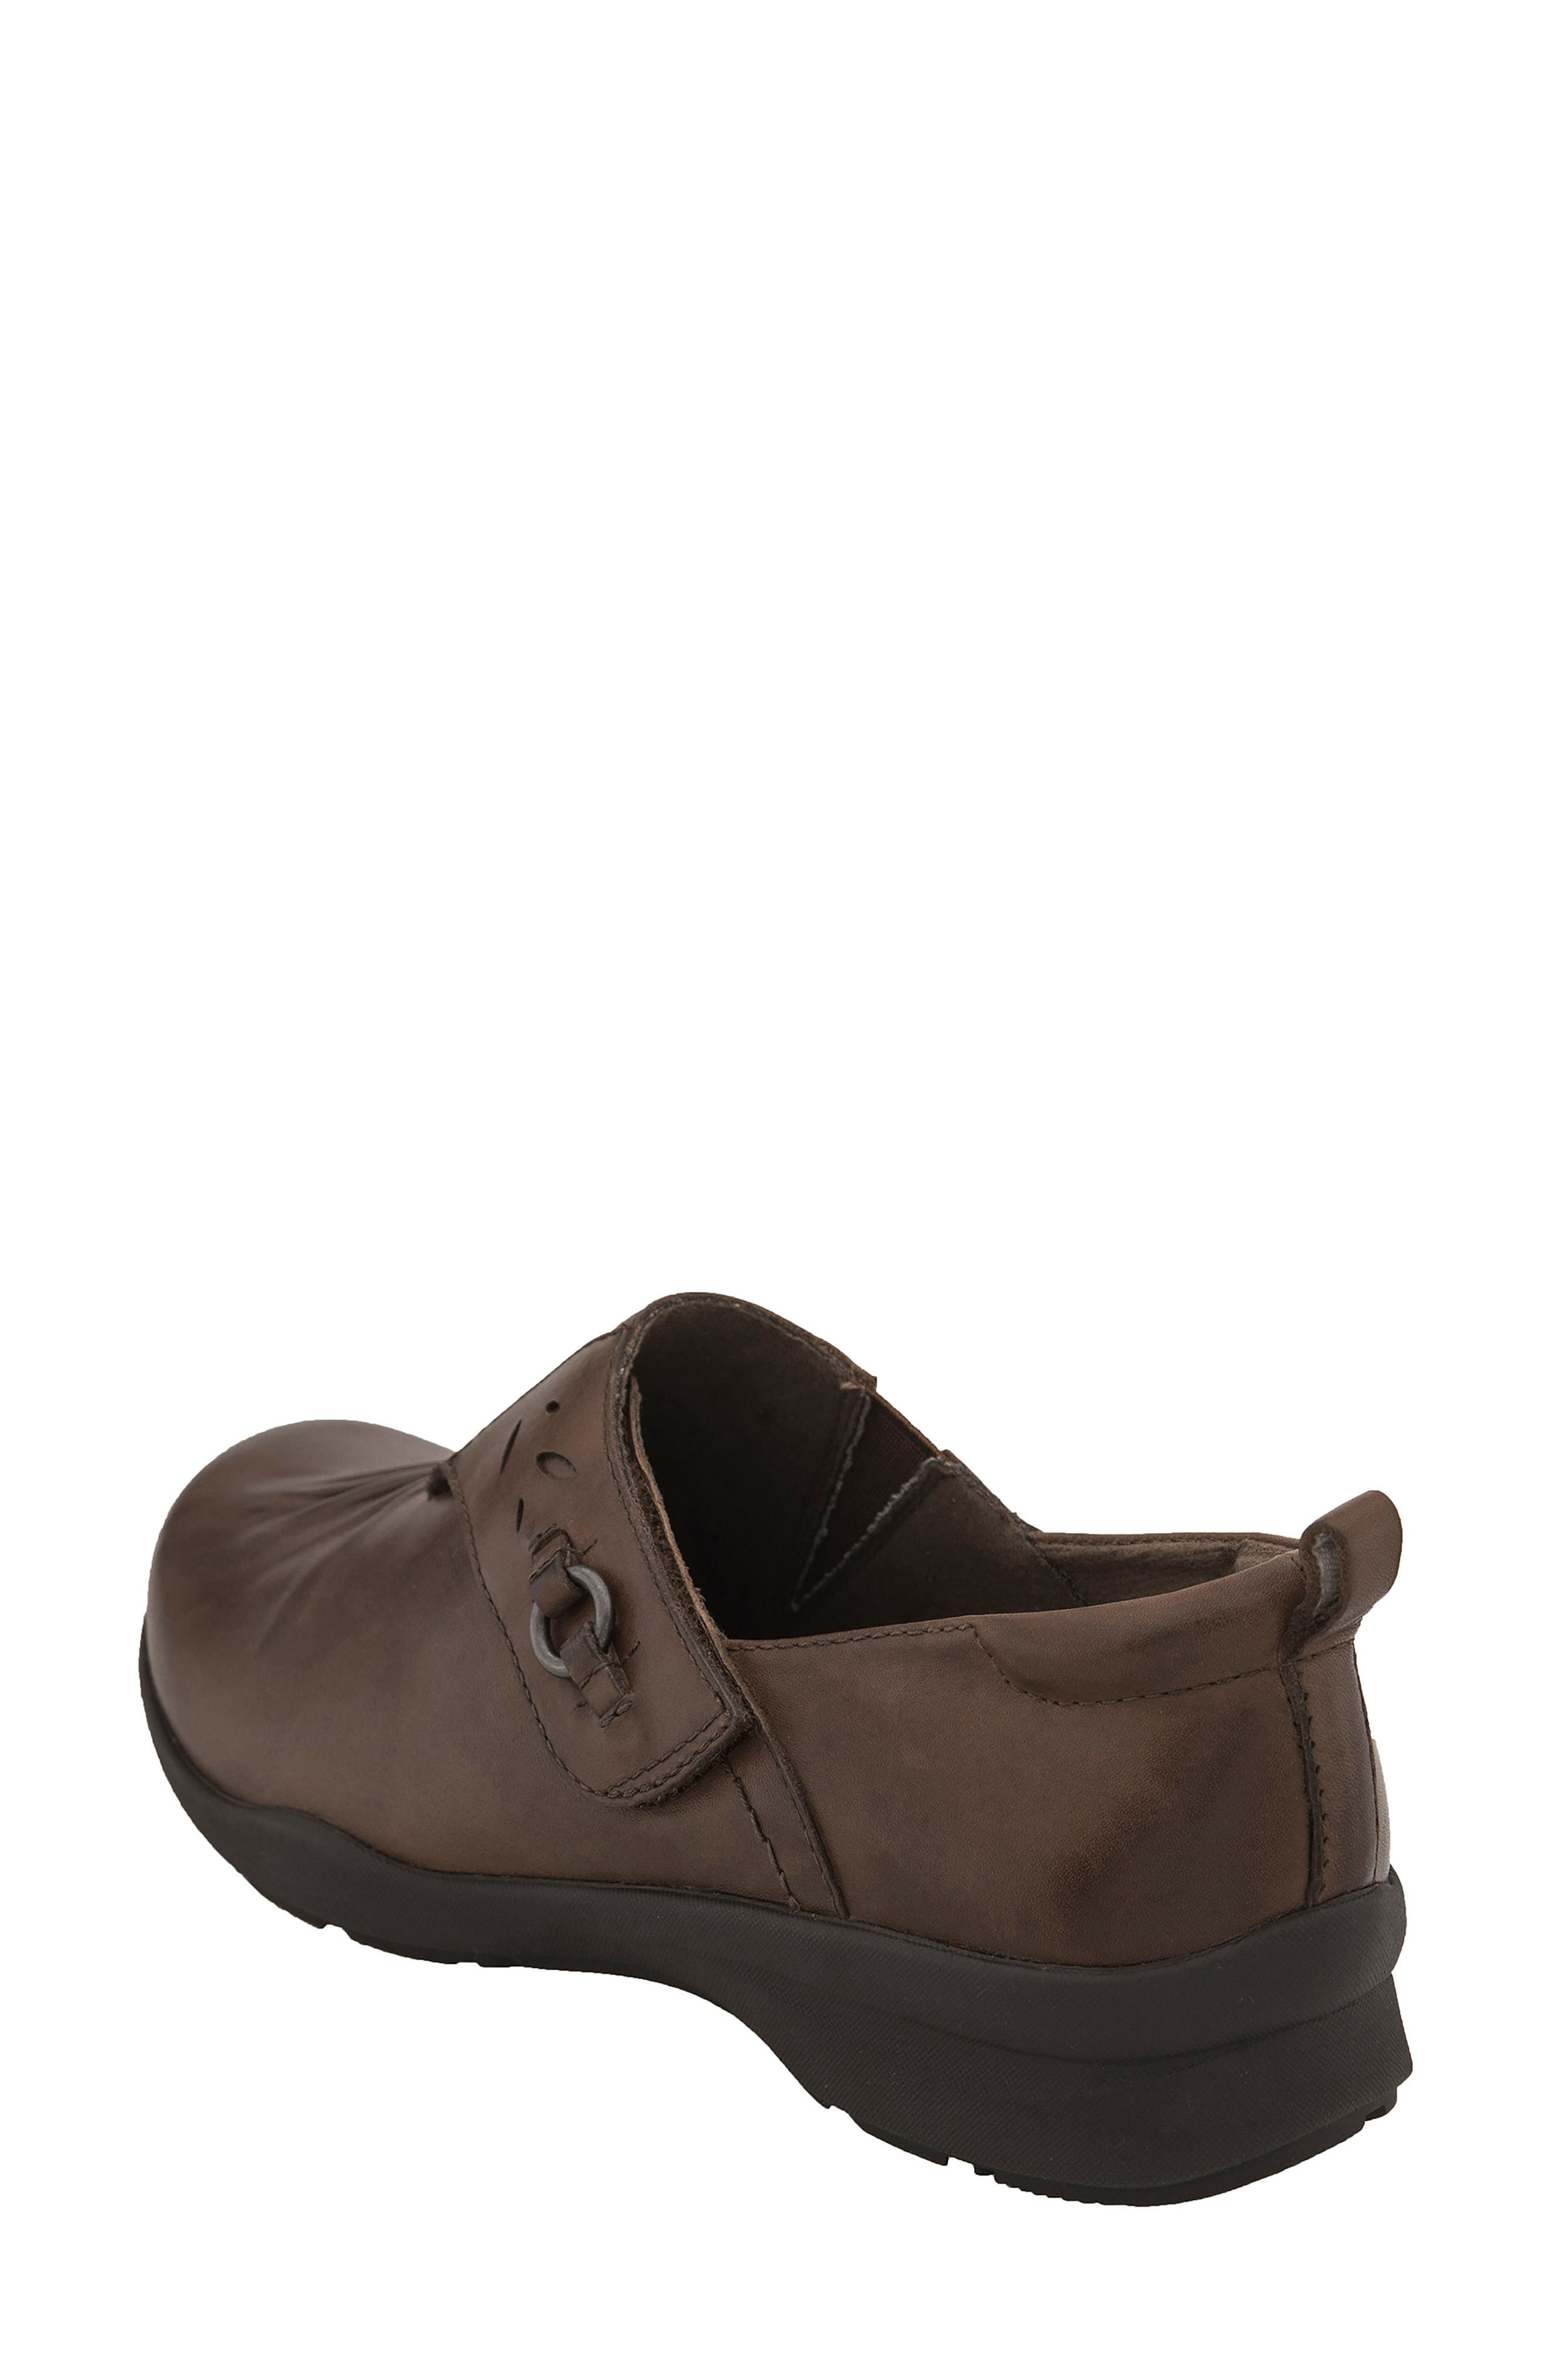 Amity Loafer,                             Alternate thumbnail 4, color,